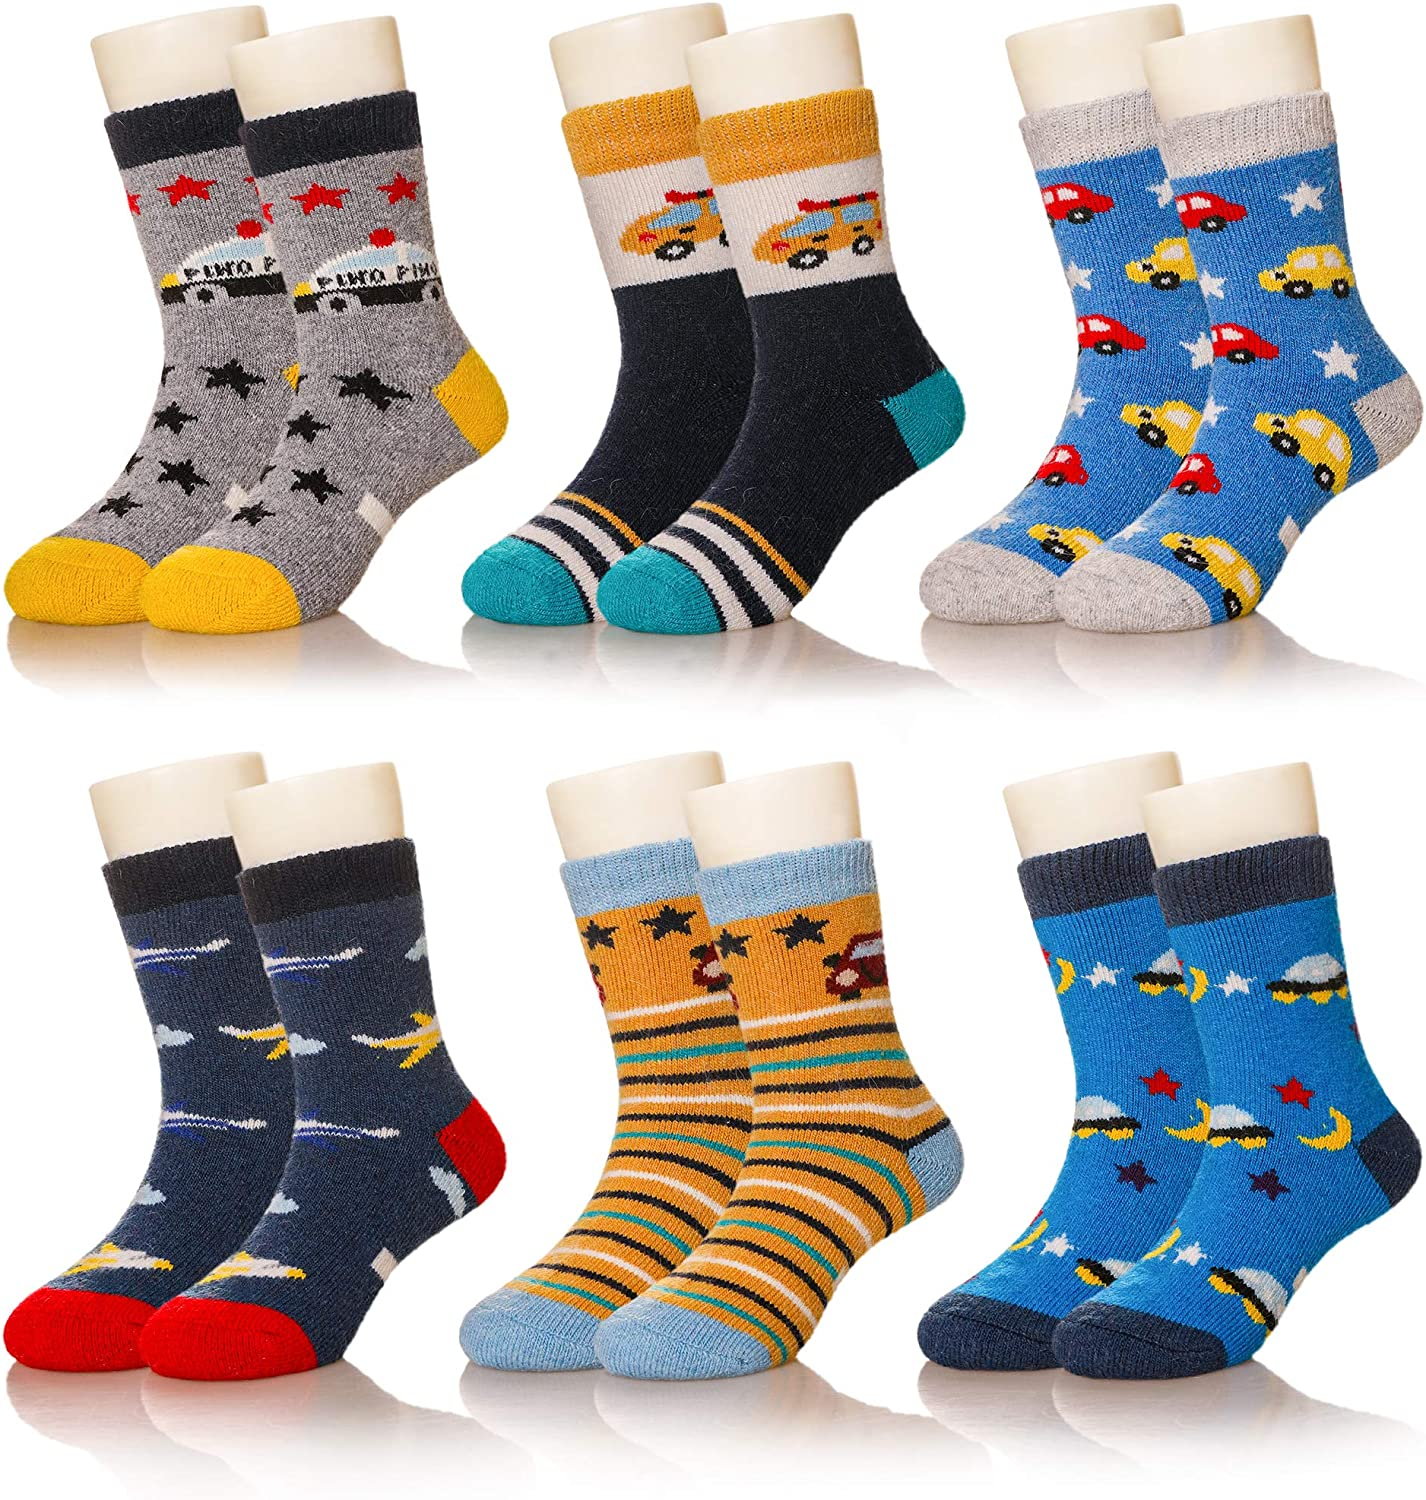 Kids Girls Boys Winter Wool Socks Super Warm Soft Thick Childrens Cute Animal Thermal Toddler Thermal Crew Casual Socks